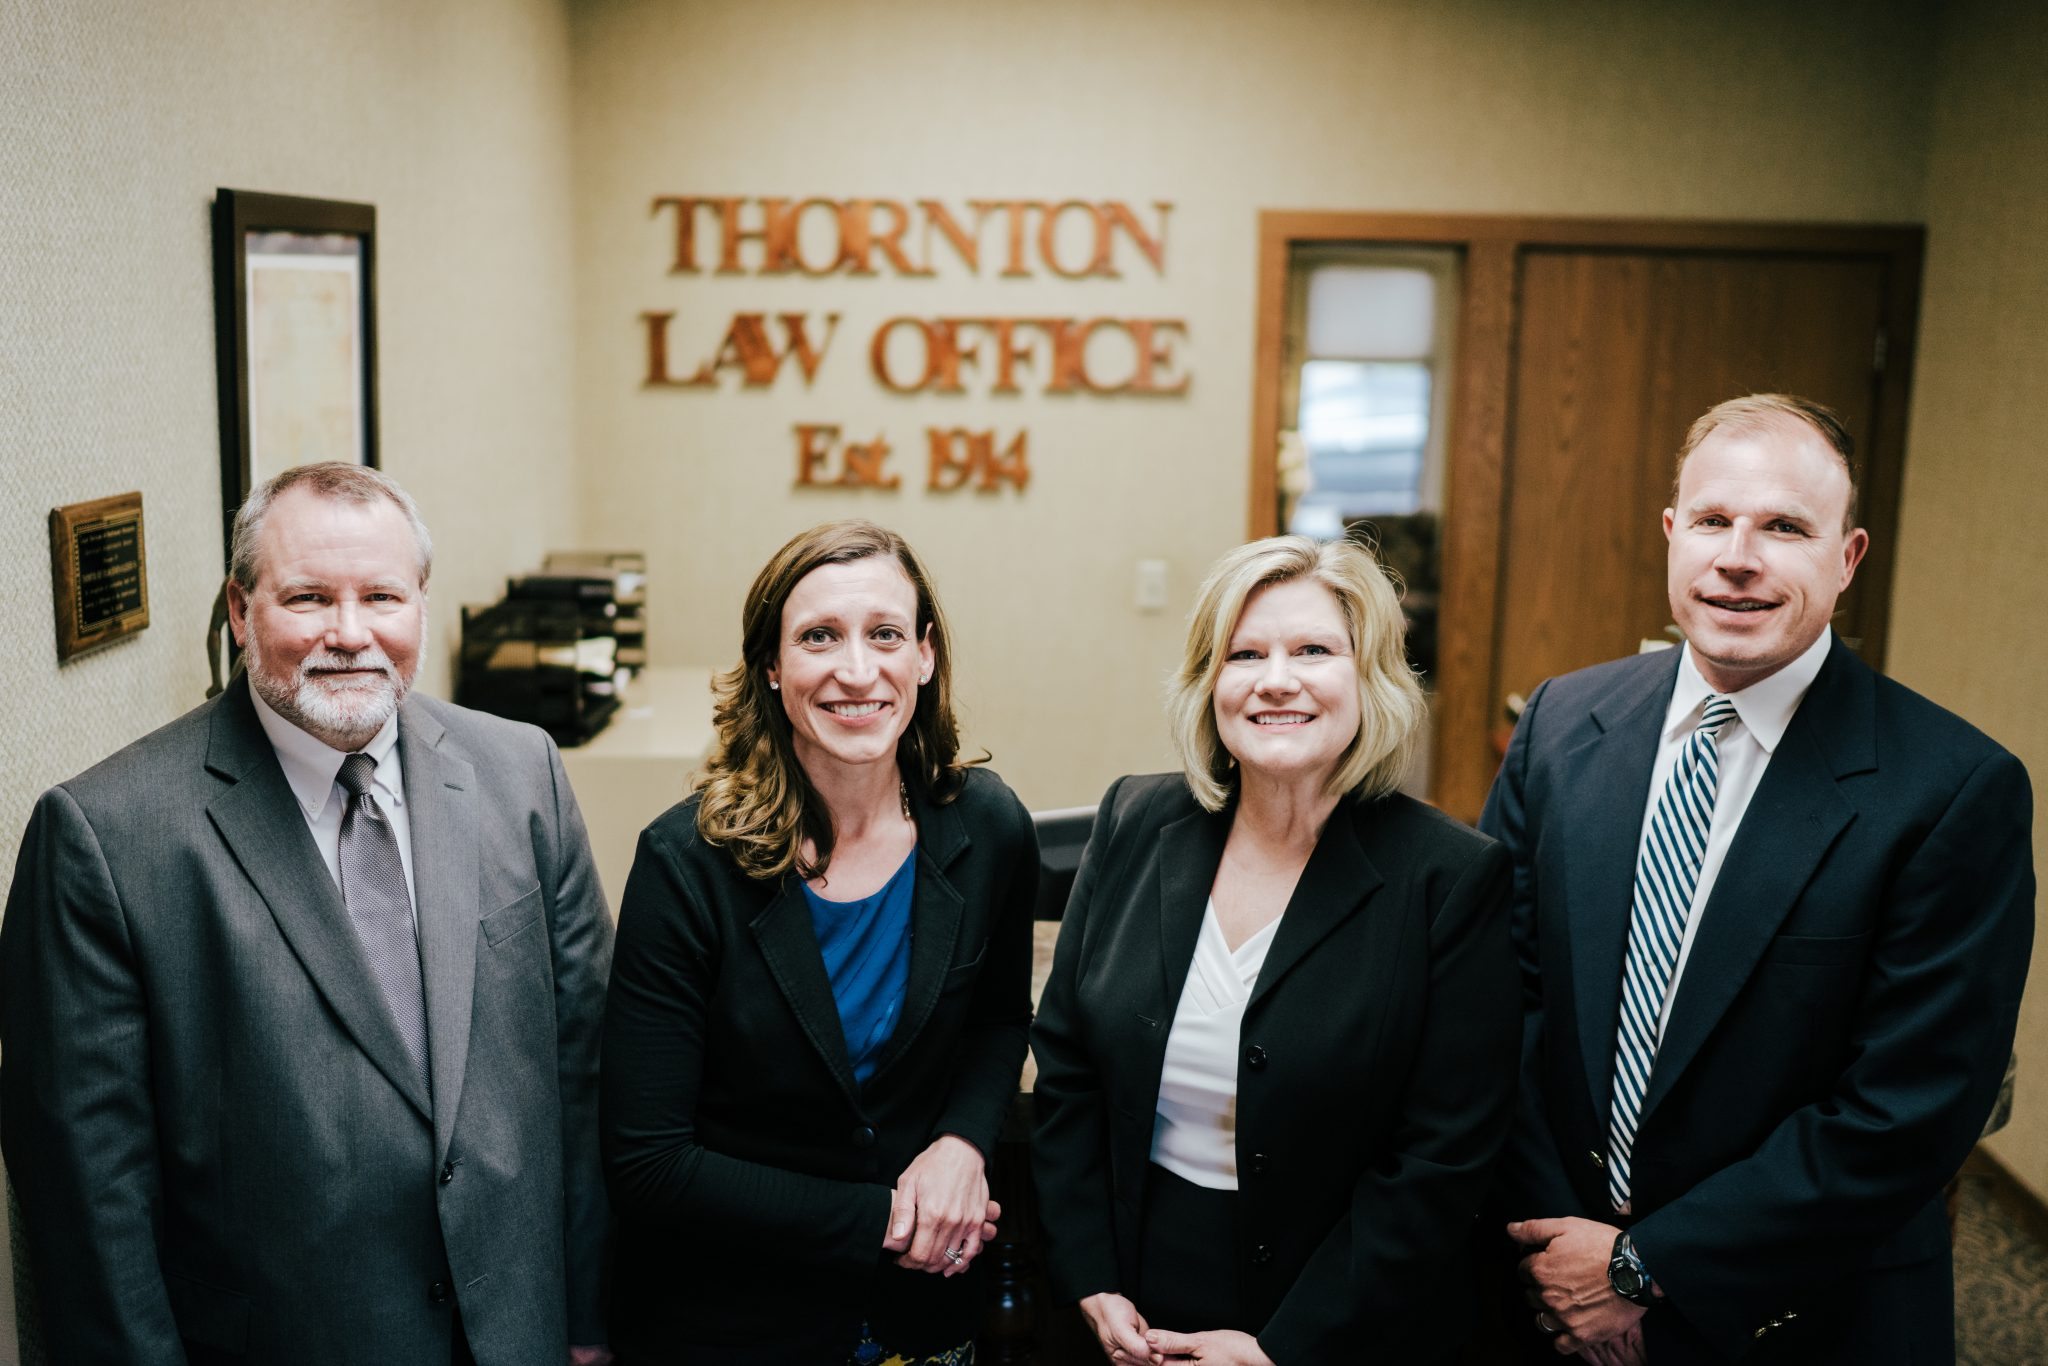 The Thornton team